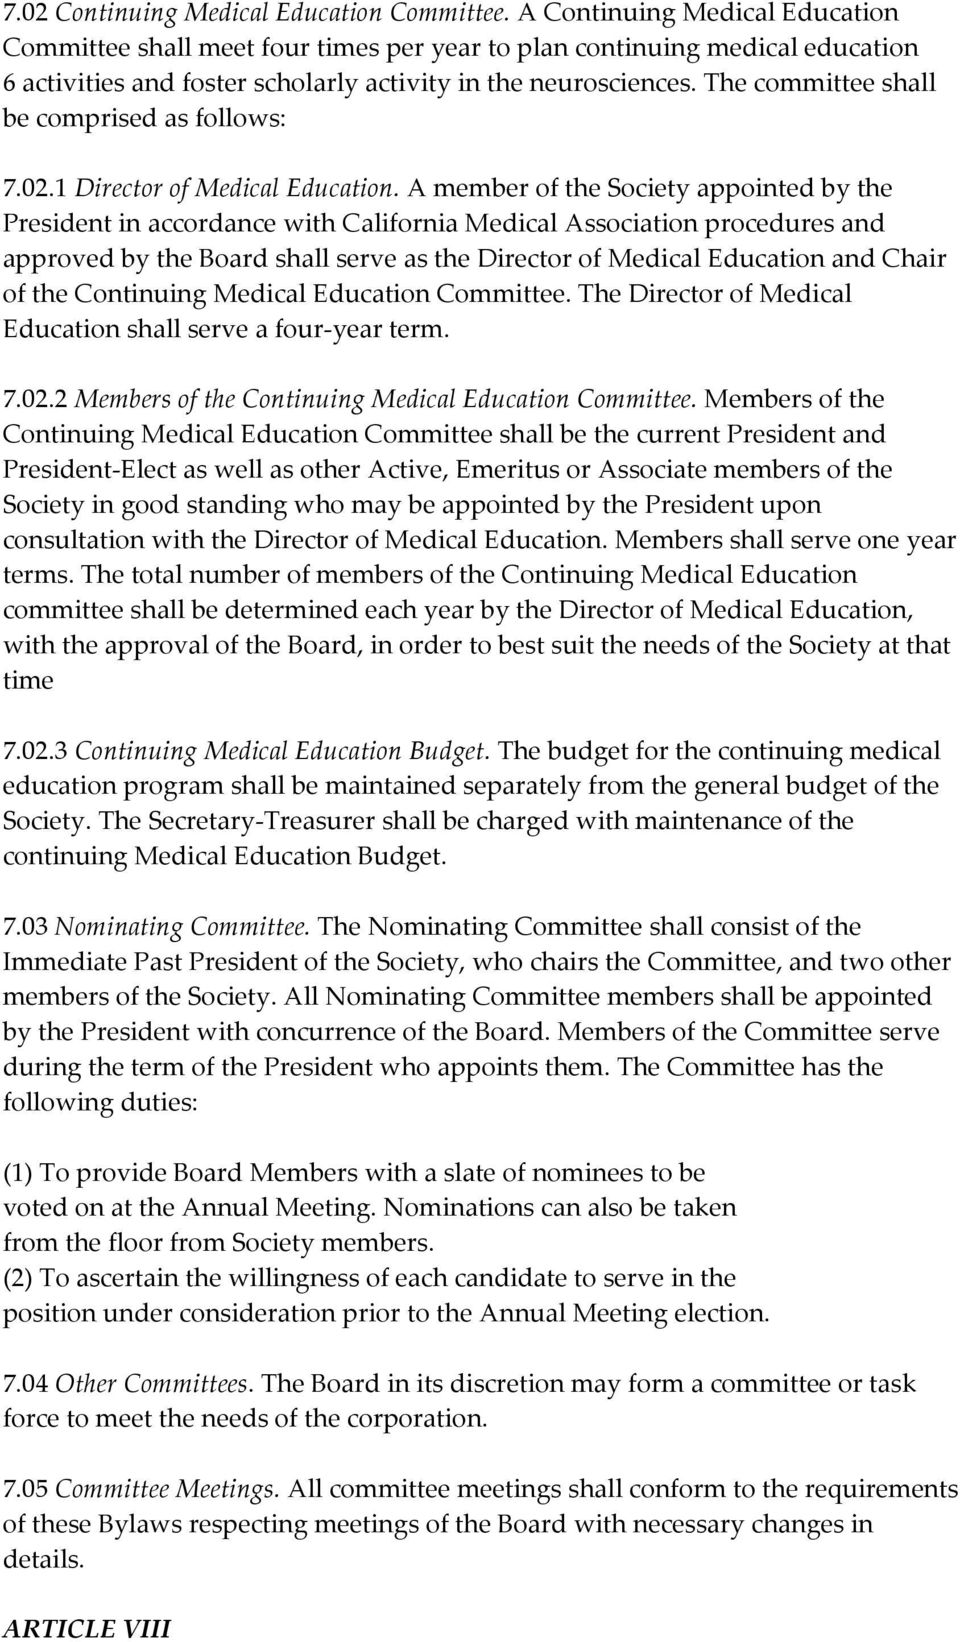 The committee shall be comprised as follows: 7.02.1 Director of Medical Education.